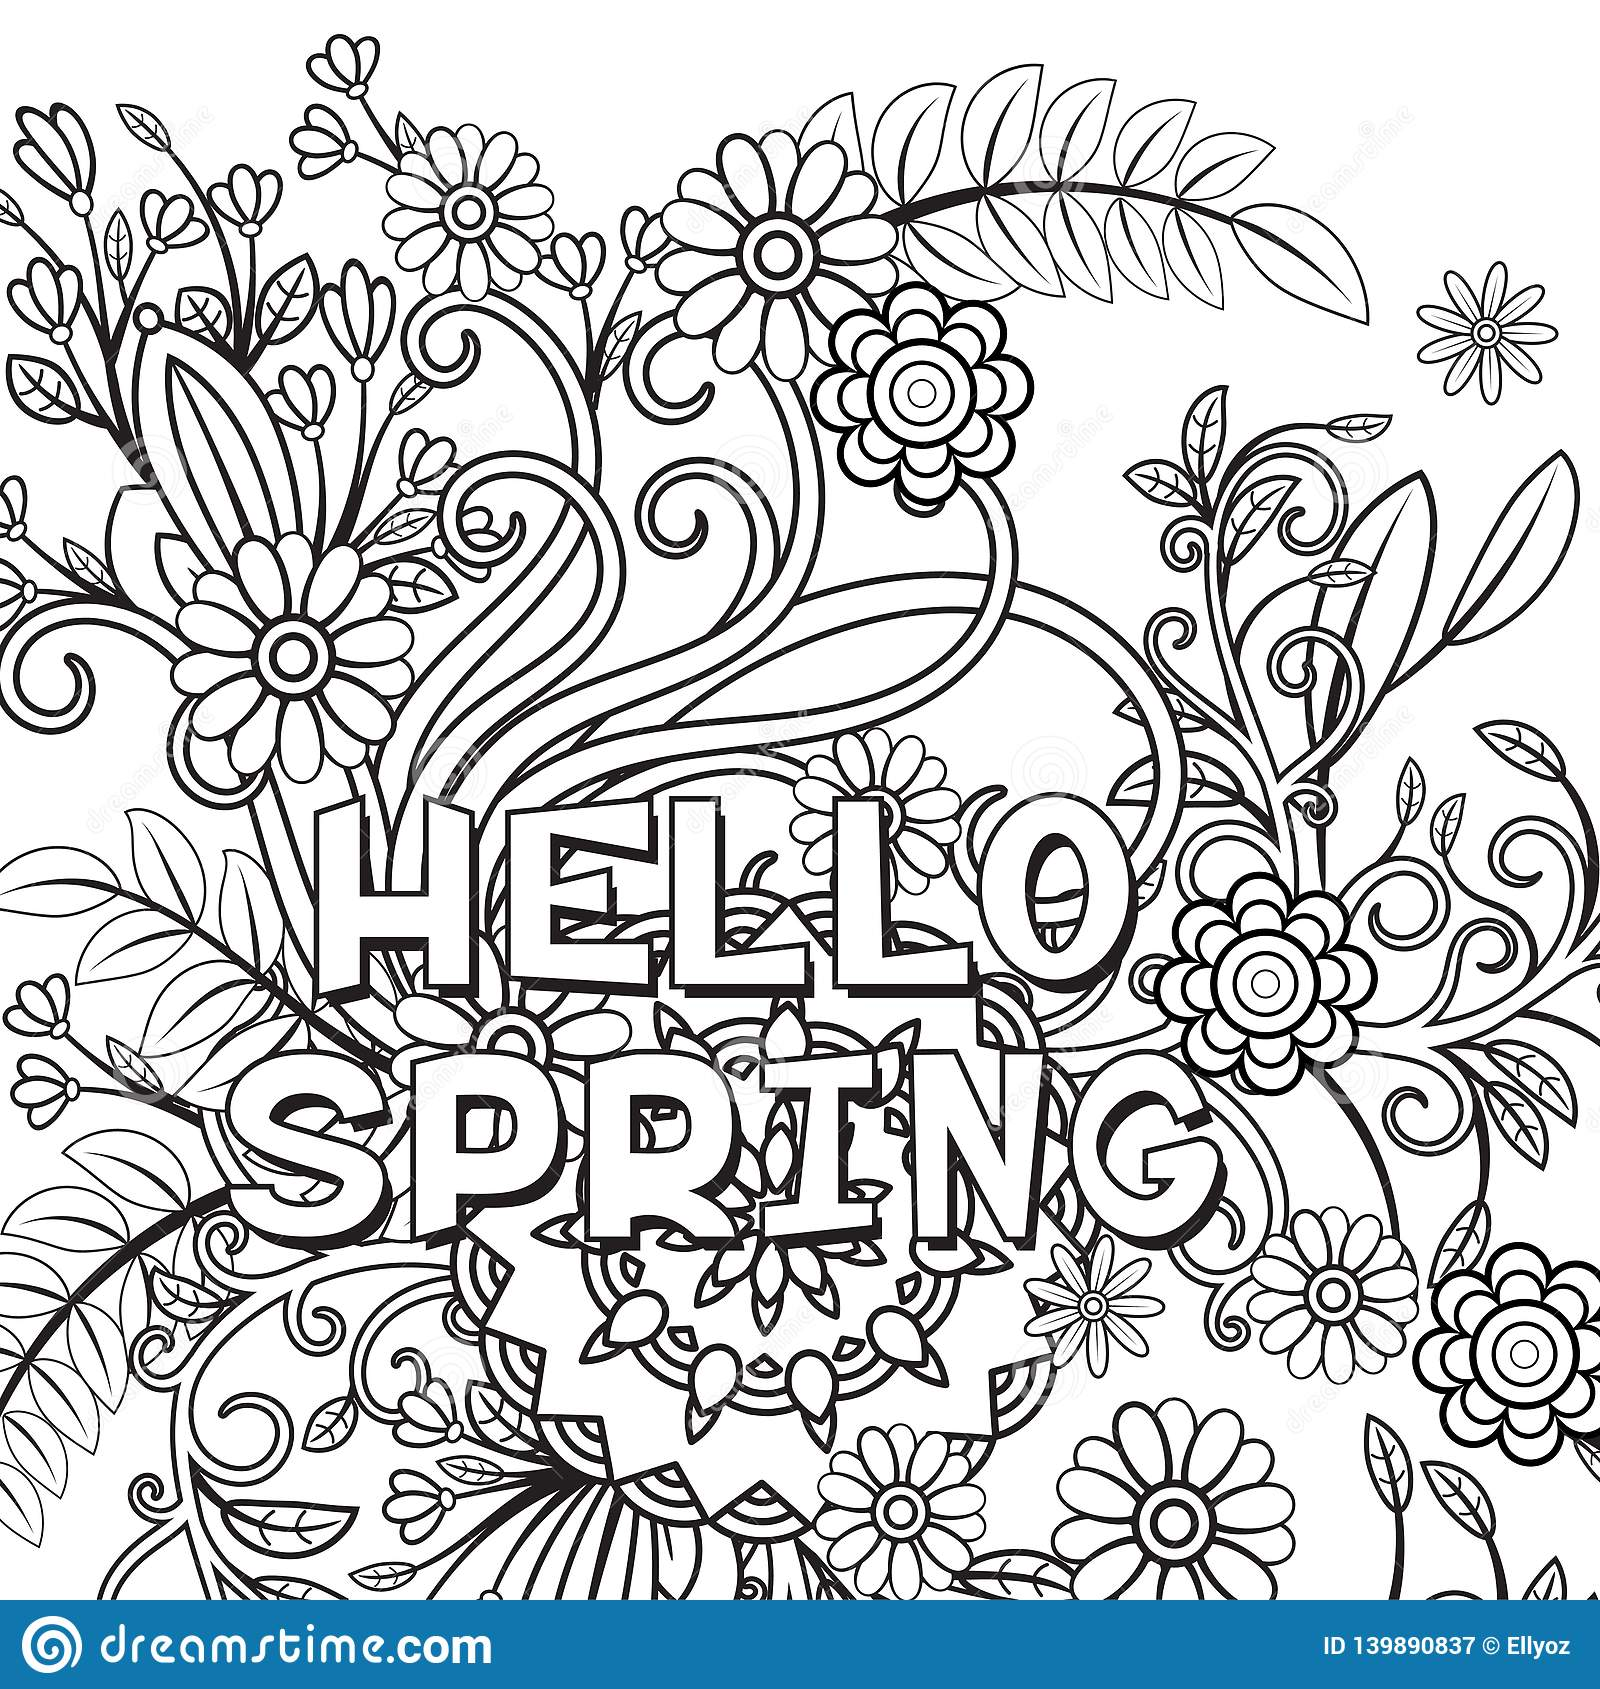 Hello spring coloring page stock vector. Illustration of ...